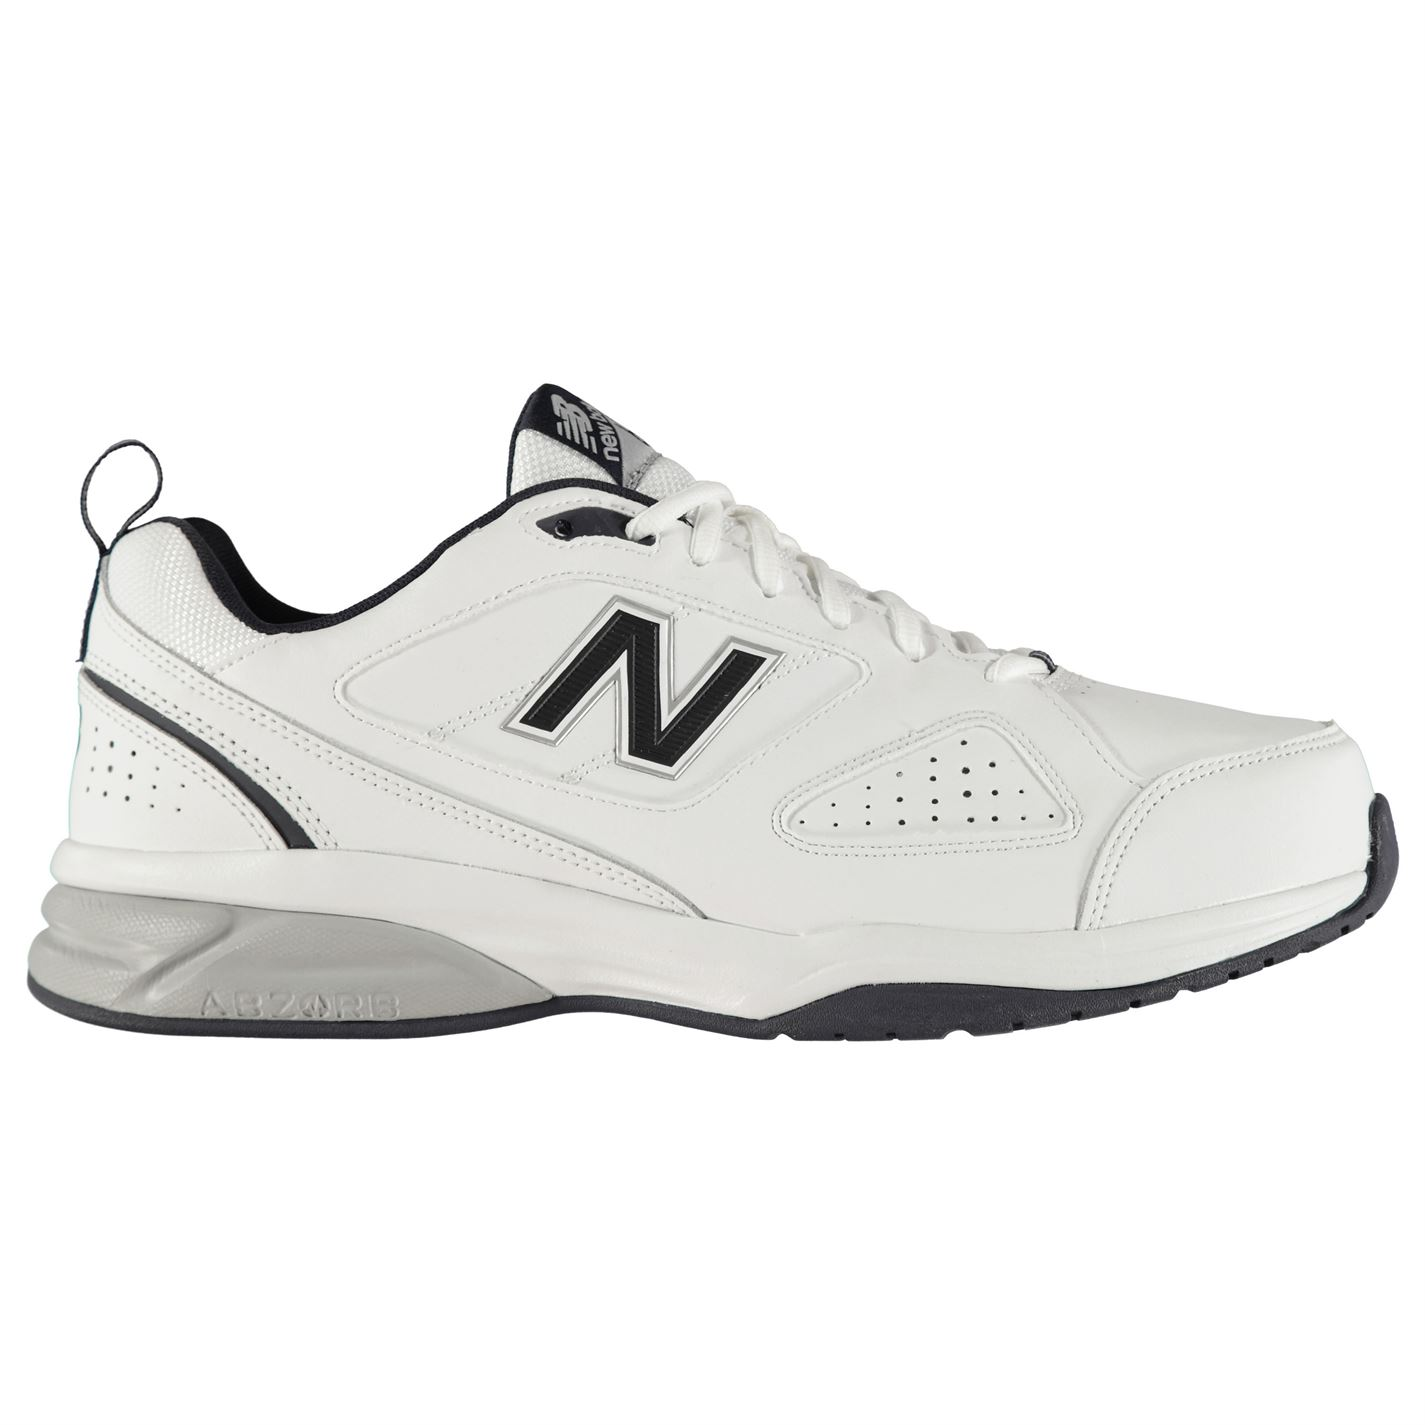 New Balance 624x4 Mens Indoor Trainers - Glami.hu 4ed74a523b